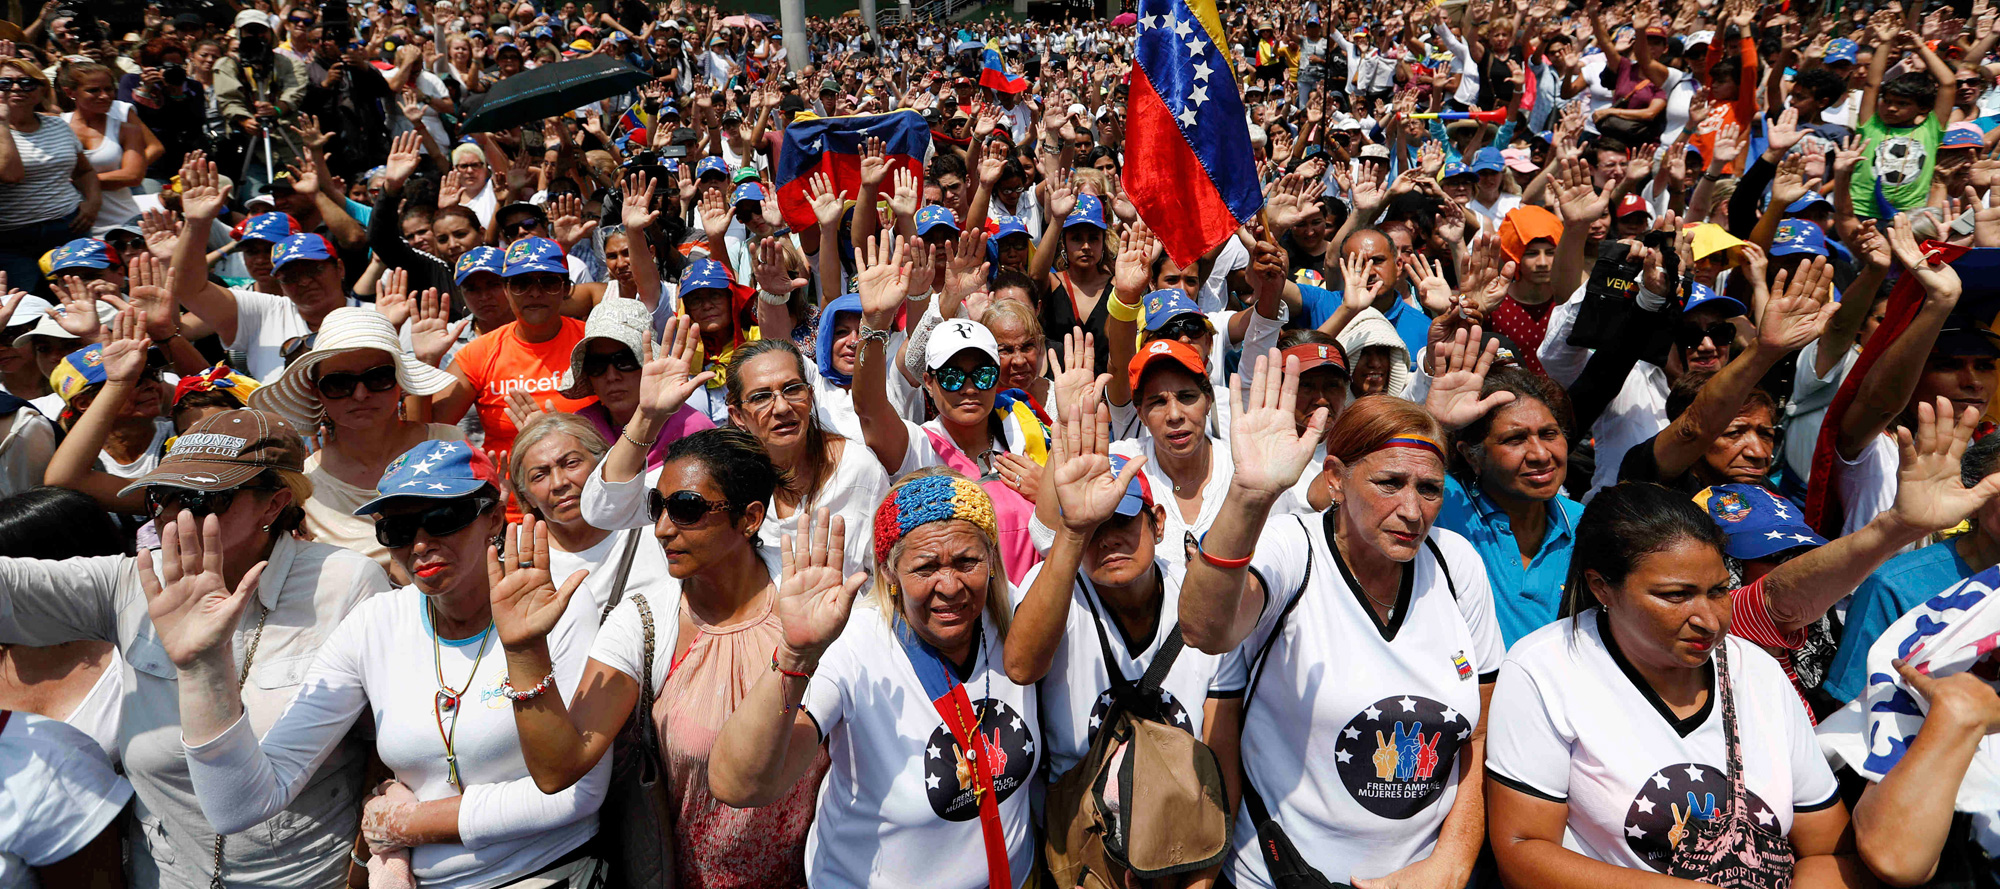 Venezuelan women take an oath to fight for women's rights during a rally to commemorate International Women's Day in Caracas, Venezuela on Friday, March 8, 2019.